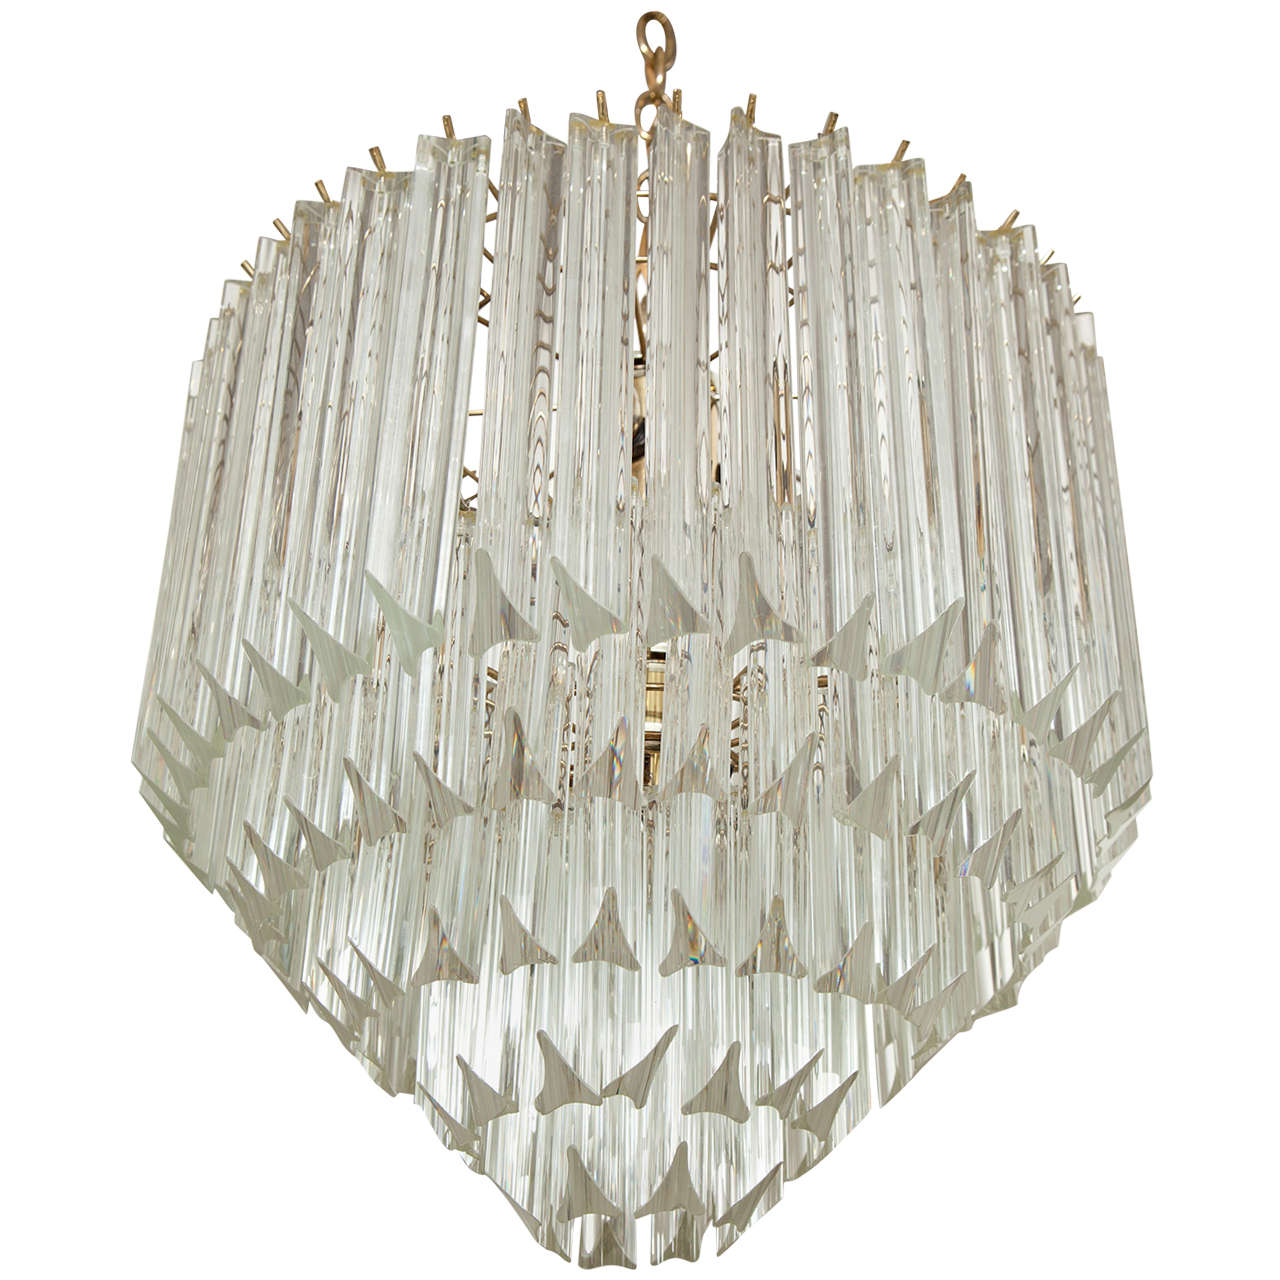 lights chandeliers products chandelier helina pedant flush chrome all w round ceiling crystal mount xiertekusa index and light